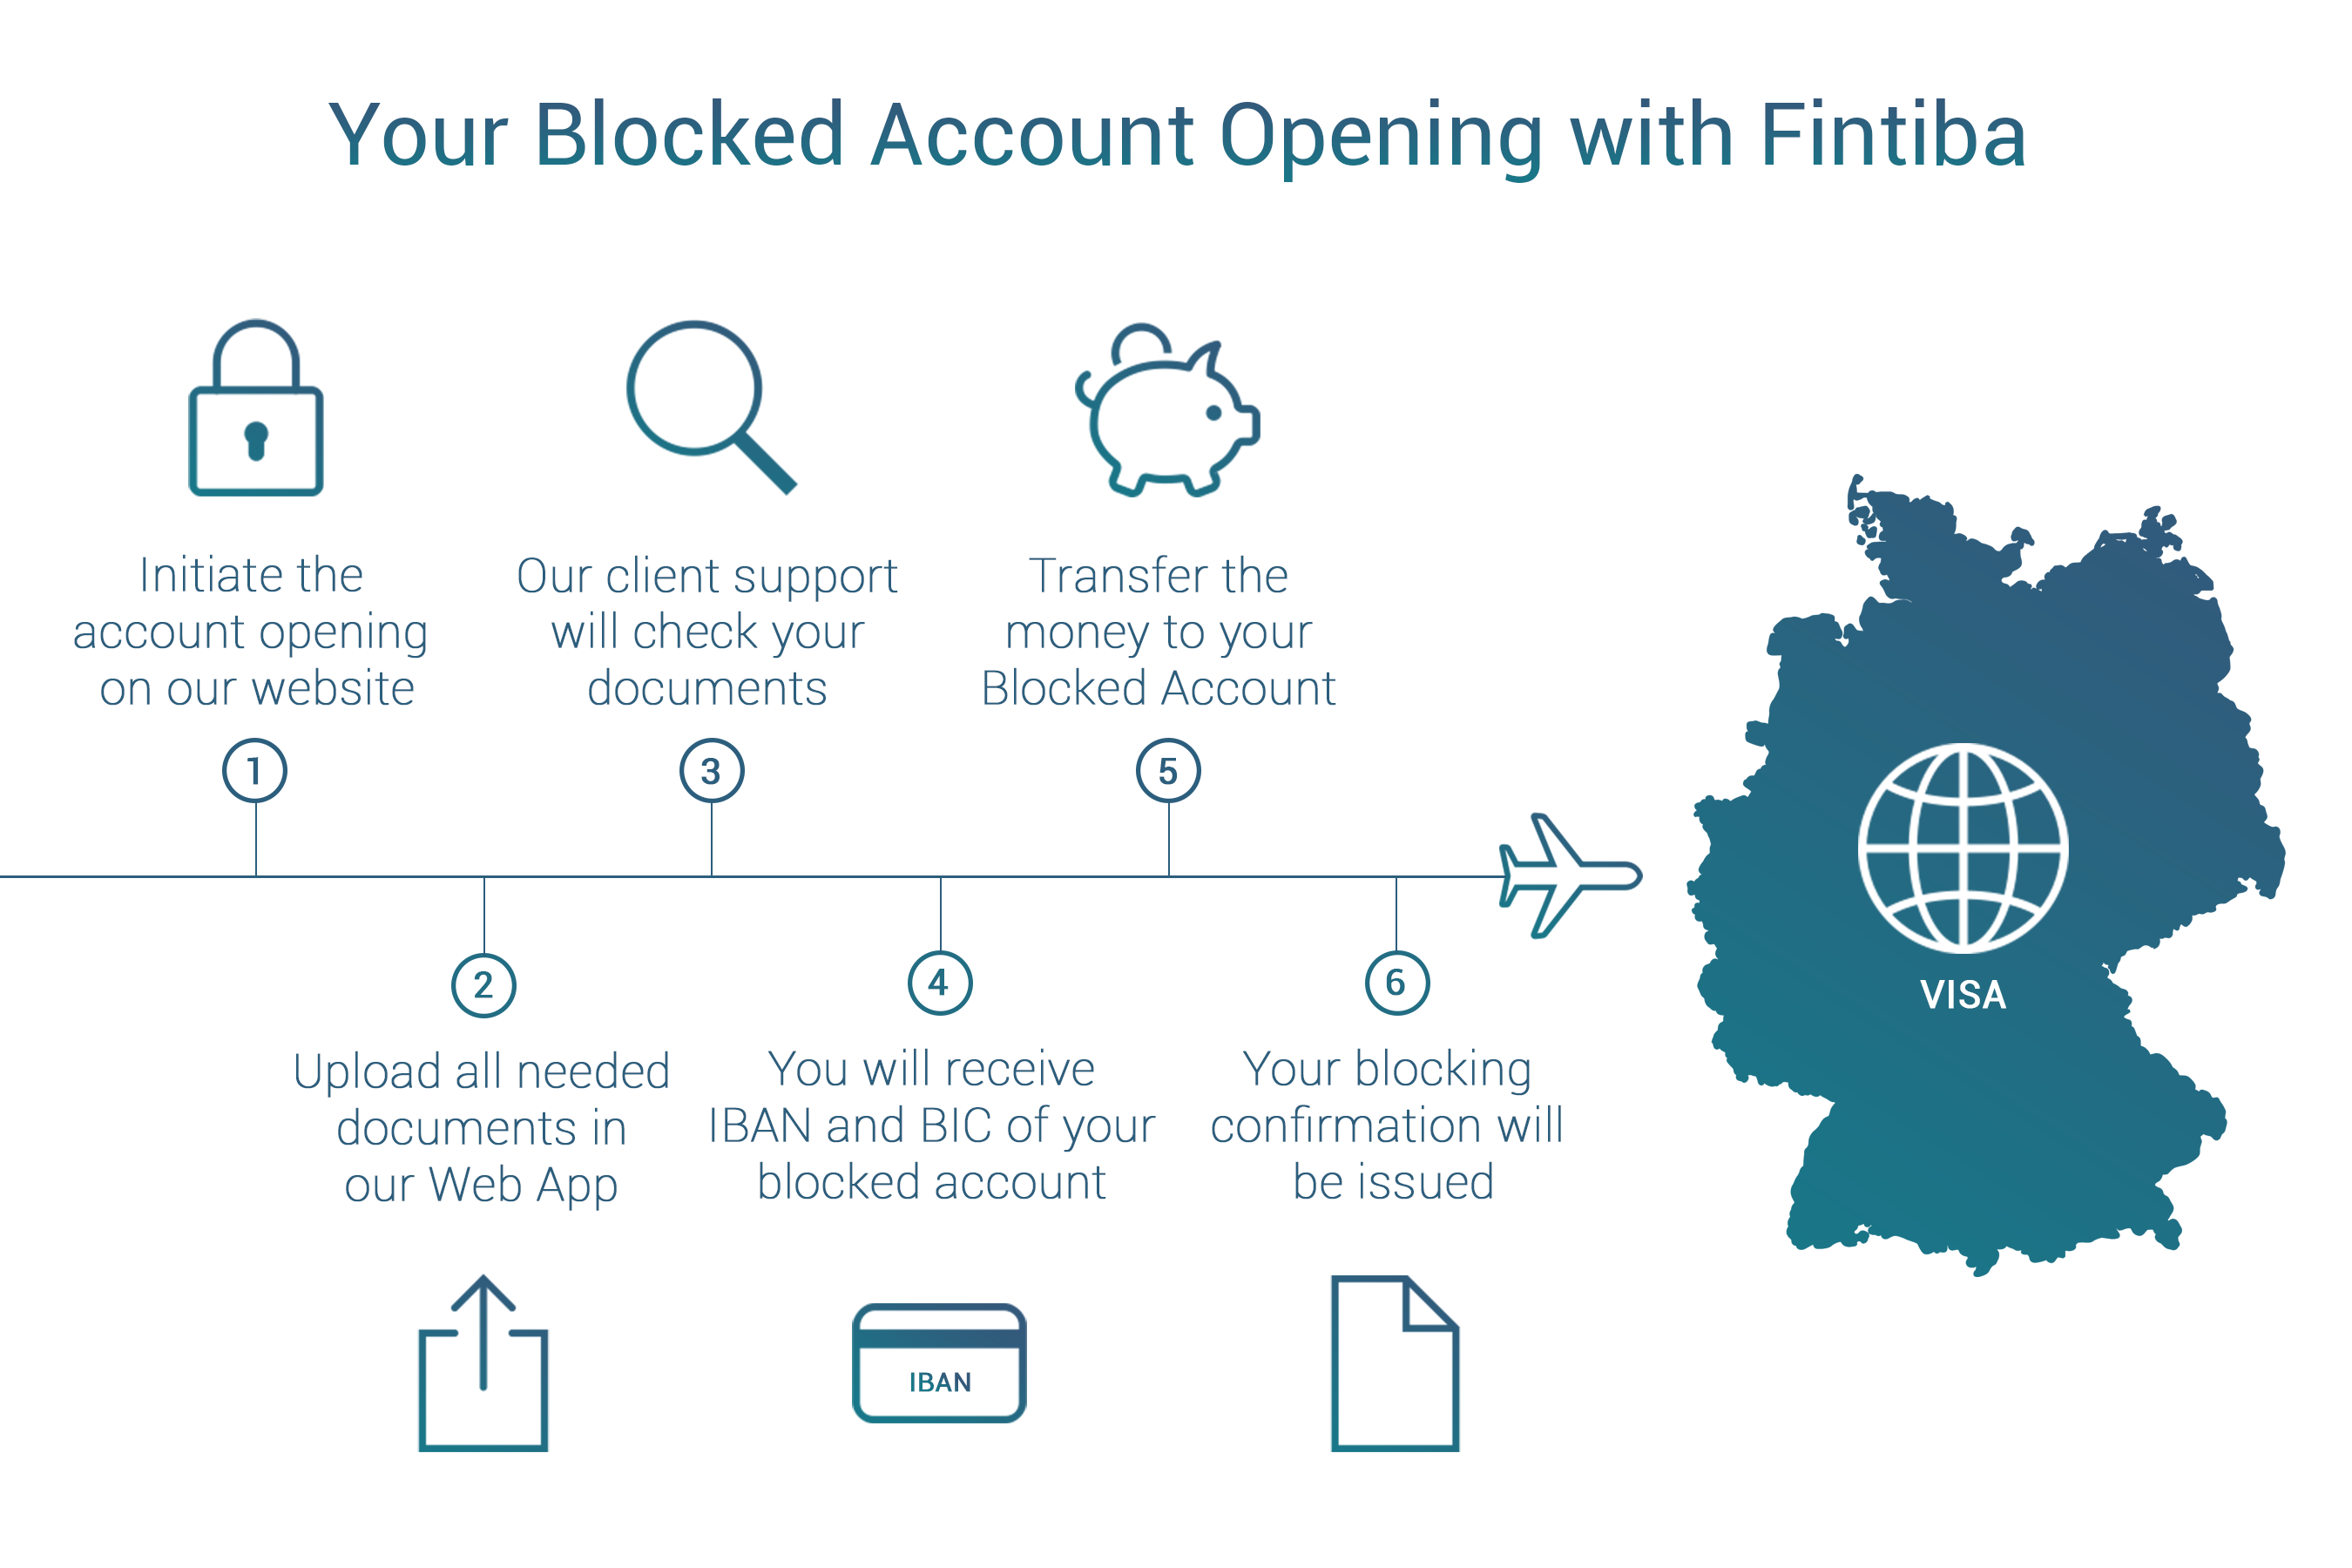 Steps to open a Fintiba Blocked account